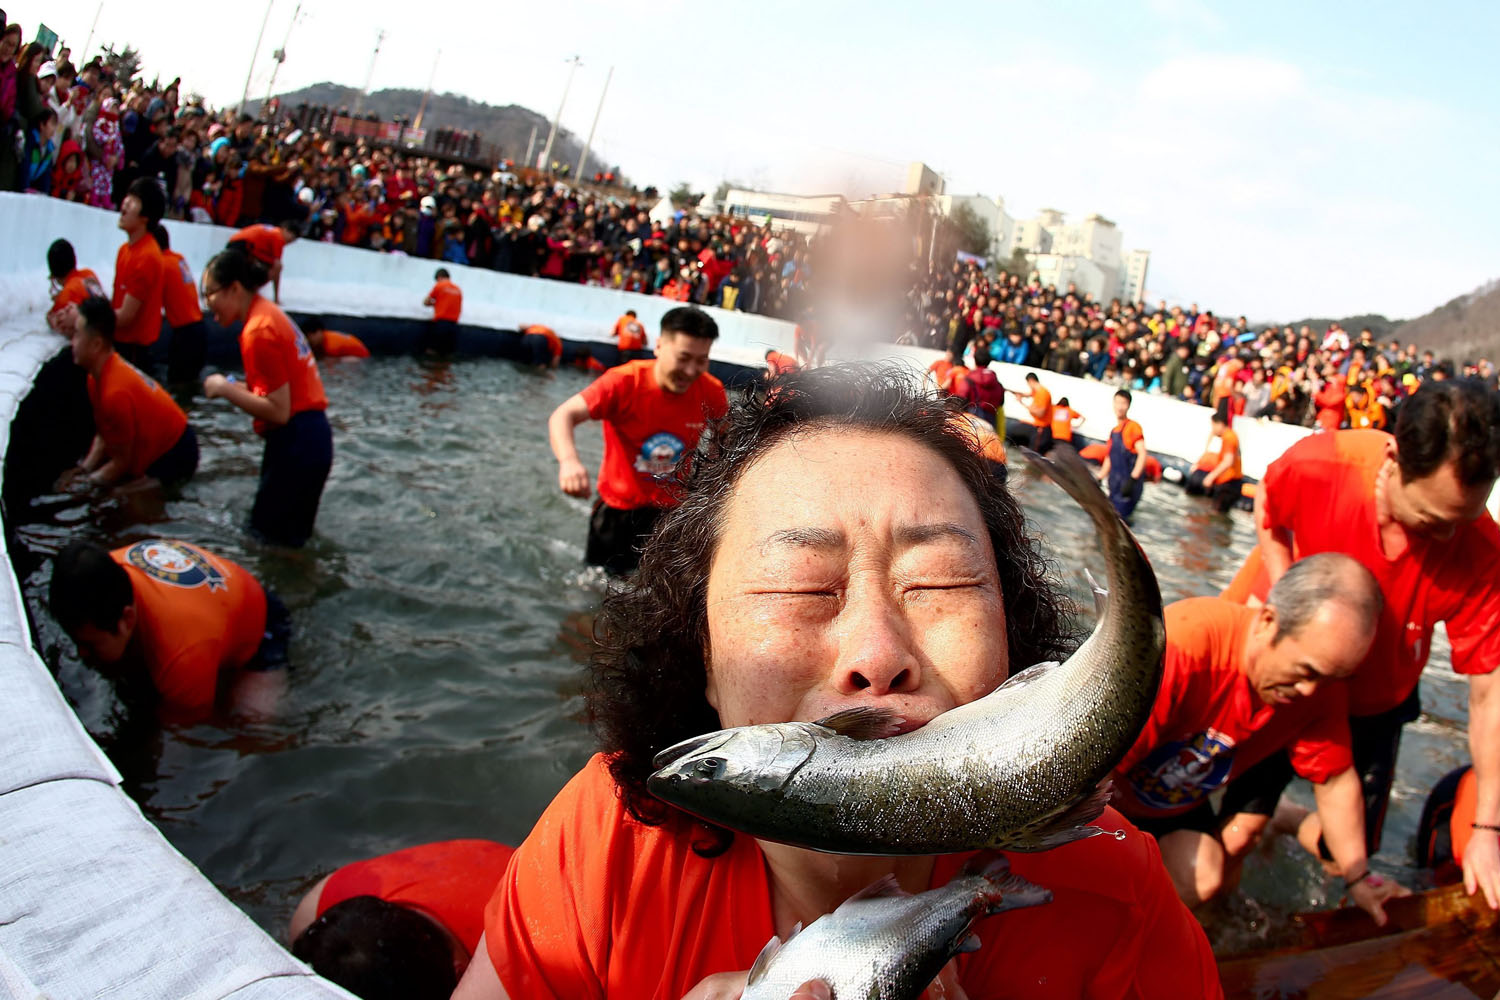 Jan. 5, 2014. Visitors are seen fishing at a frozen river during the Hwacheon Sancheoneo Ice Festival in Hwacheon-gun, Gangwon province, South Korea.